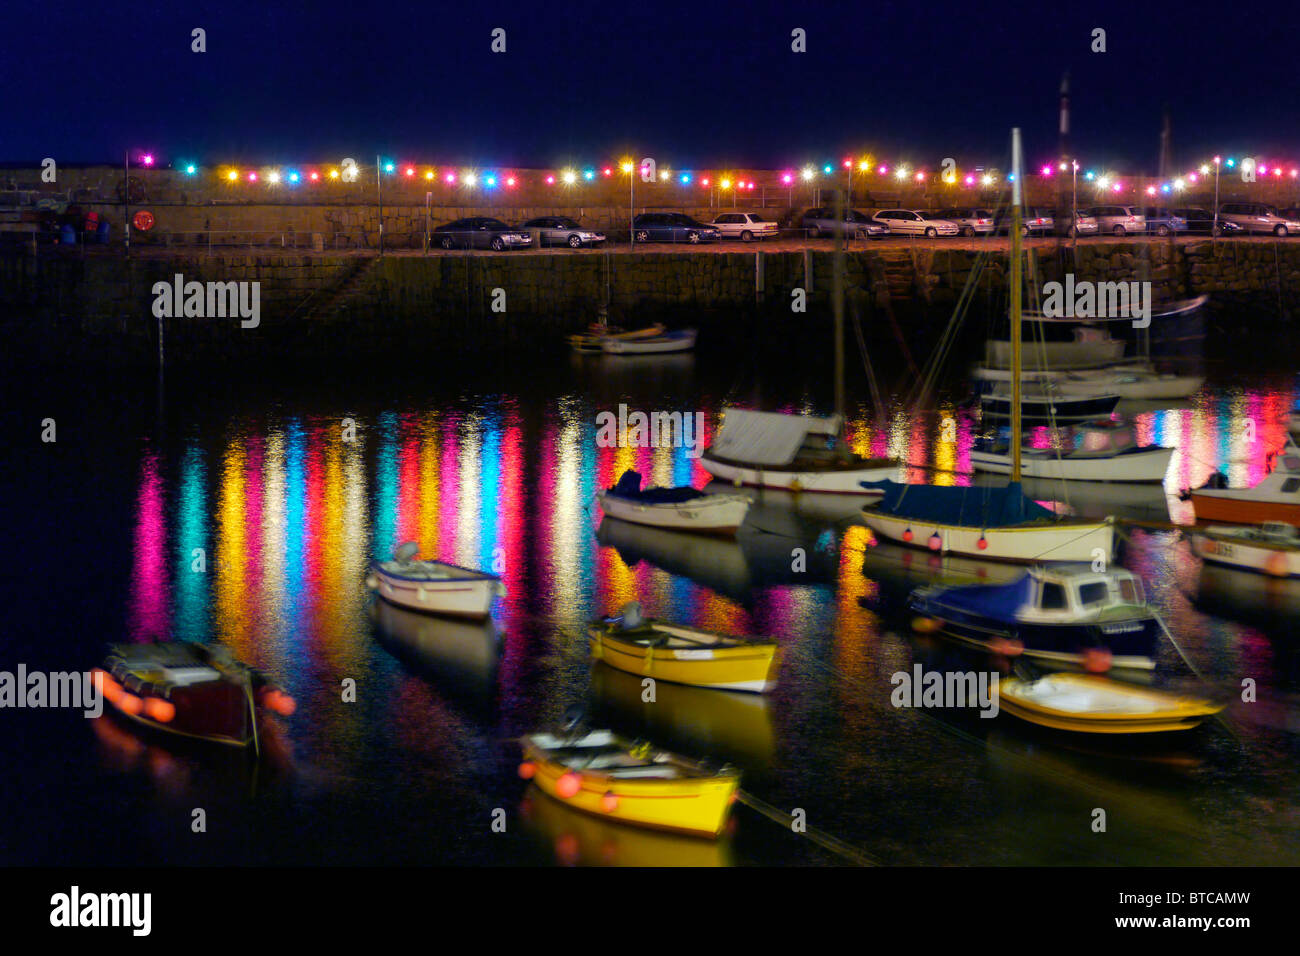 Night shot of Mousehole, Cornwall harbour lights. Slight amount of noise and motion blur due to long exposure required. - Stock Image